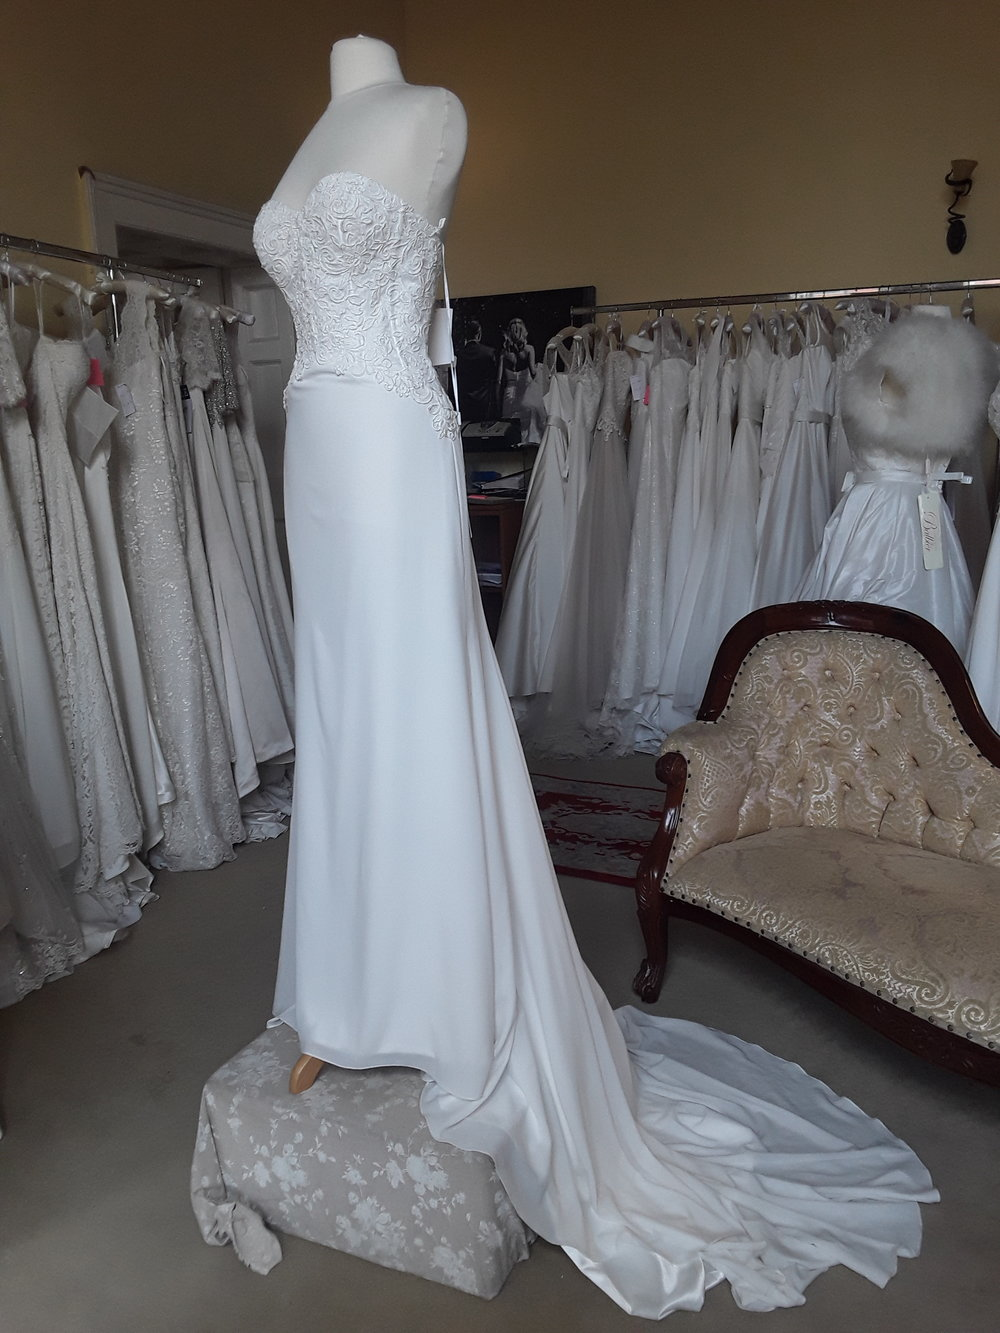 Ellis strapless Chiffon Dress with Embroidered Bodice  Colour : Ivory  Size: 10  Was €1,595 now €599  Ref: E107